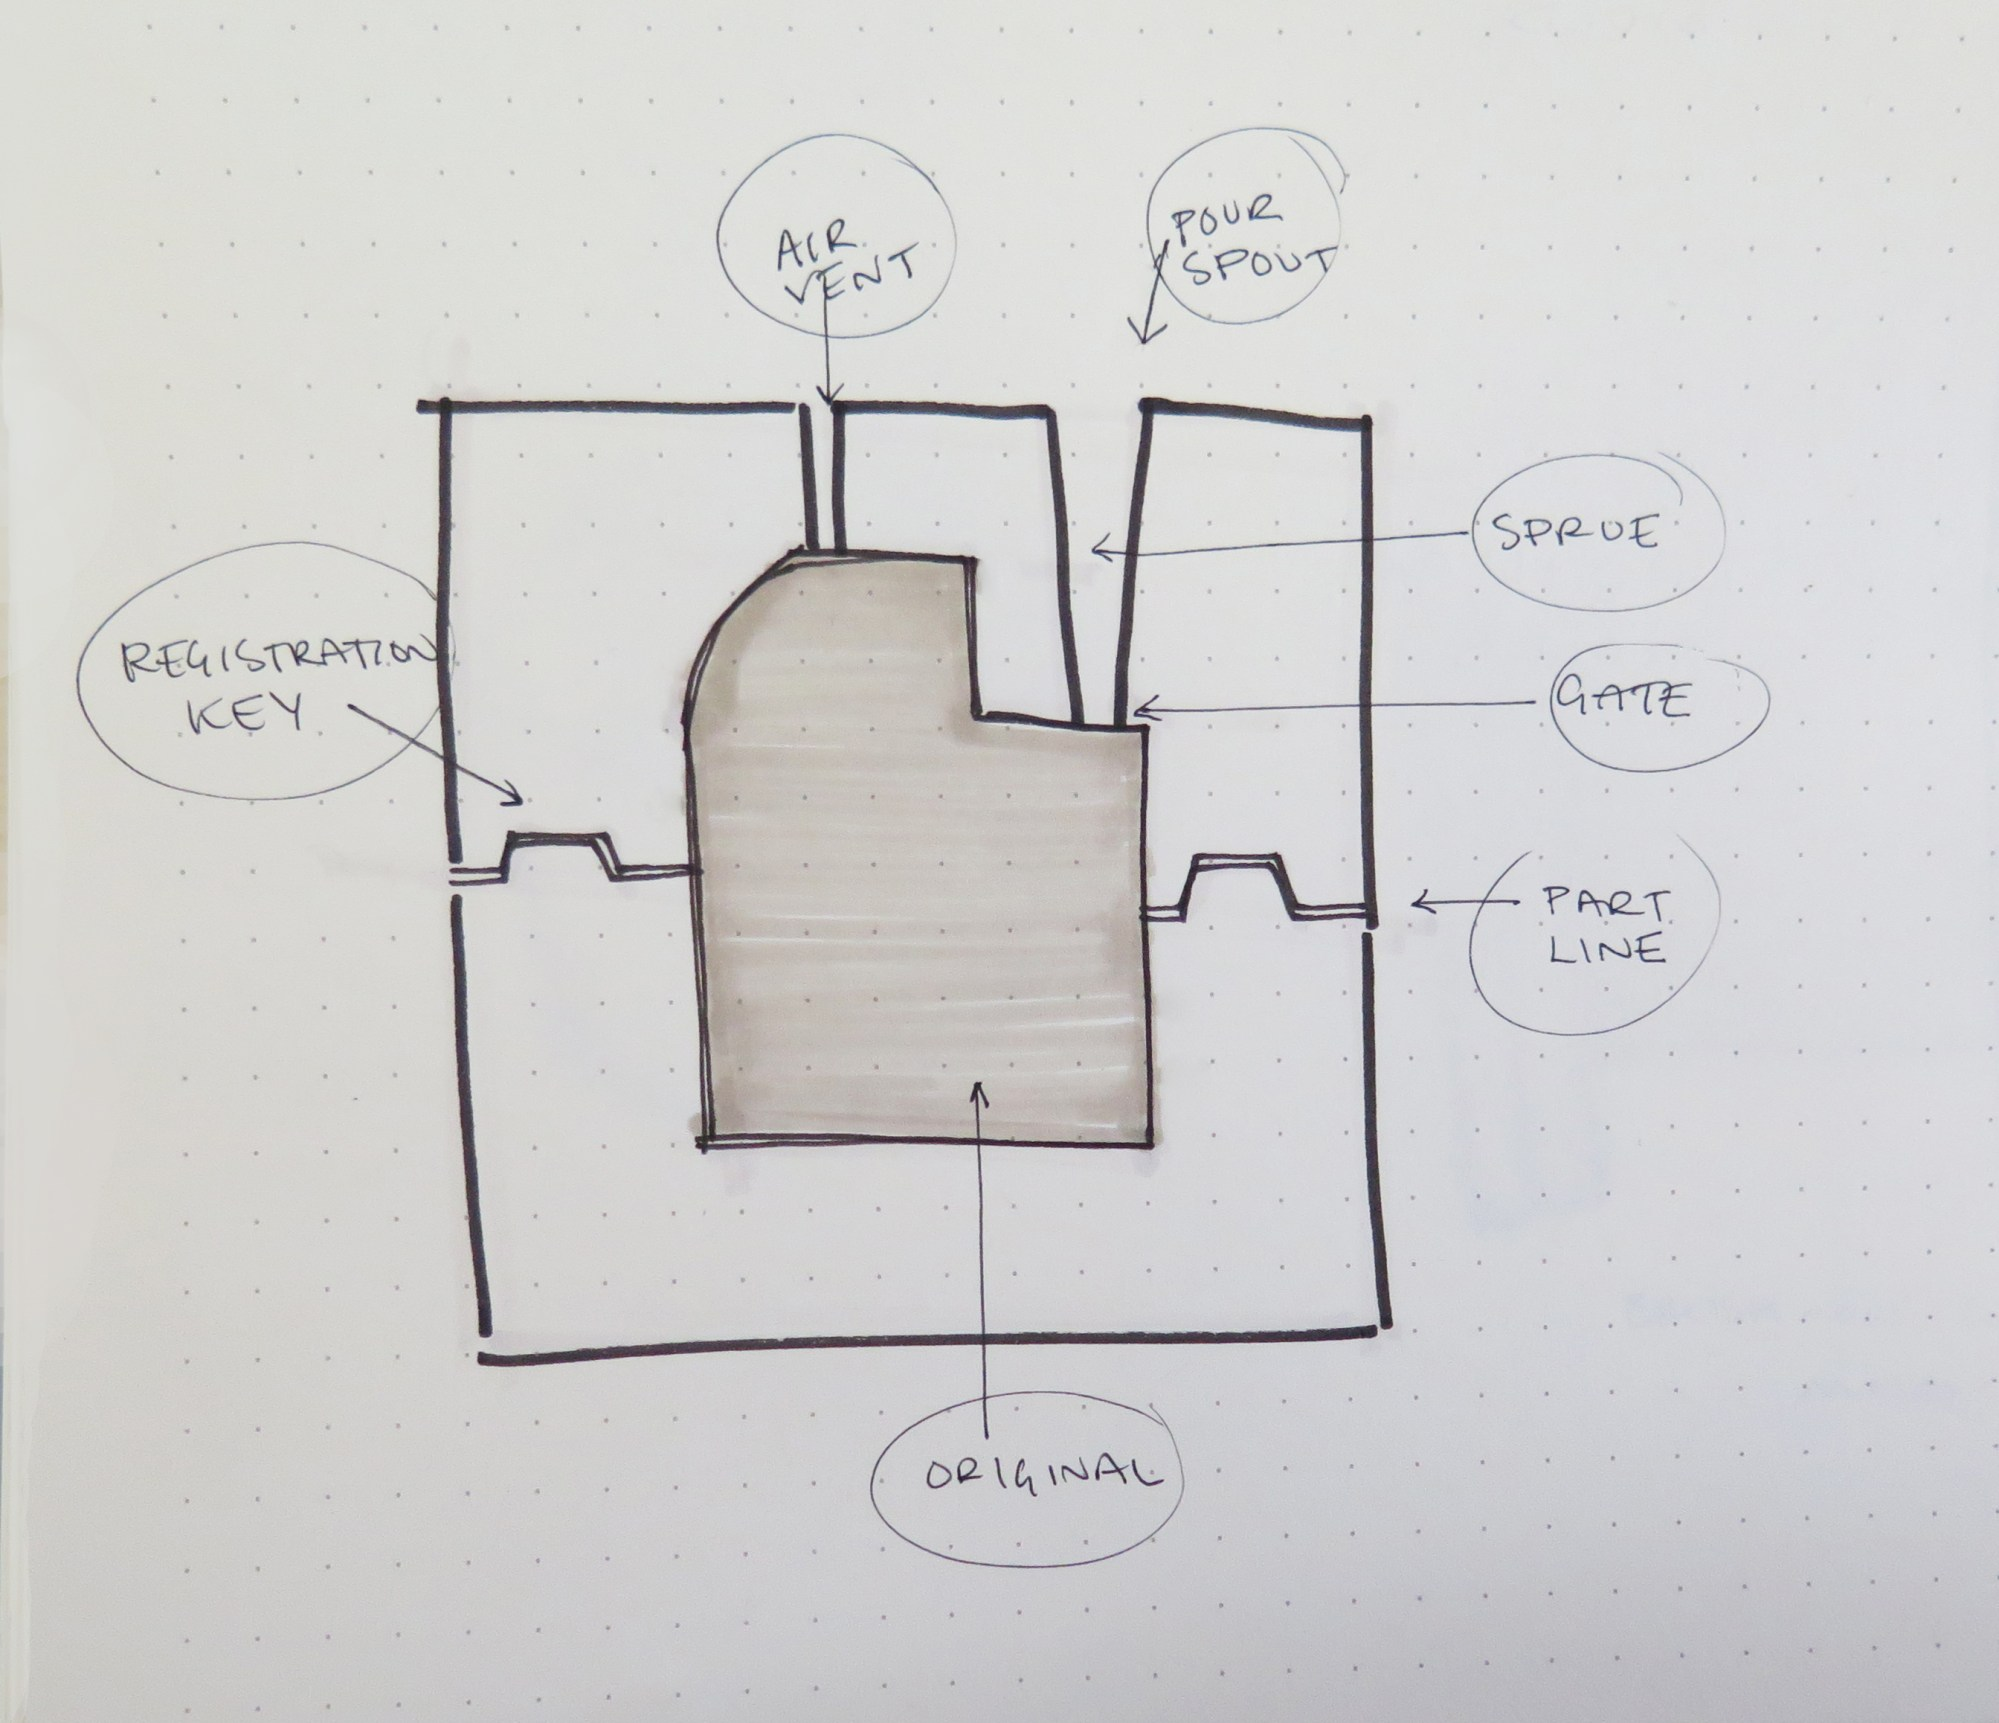 hight resolution of diagram of a basic 2 part pour mold